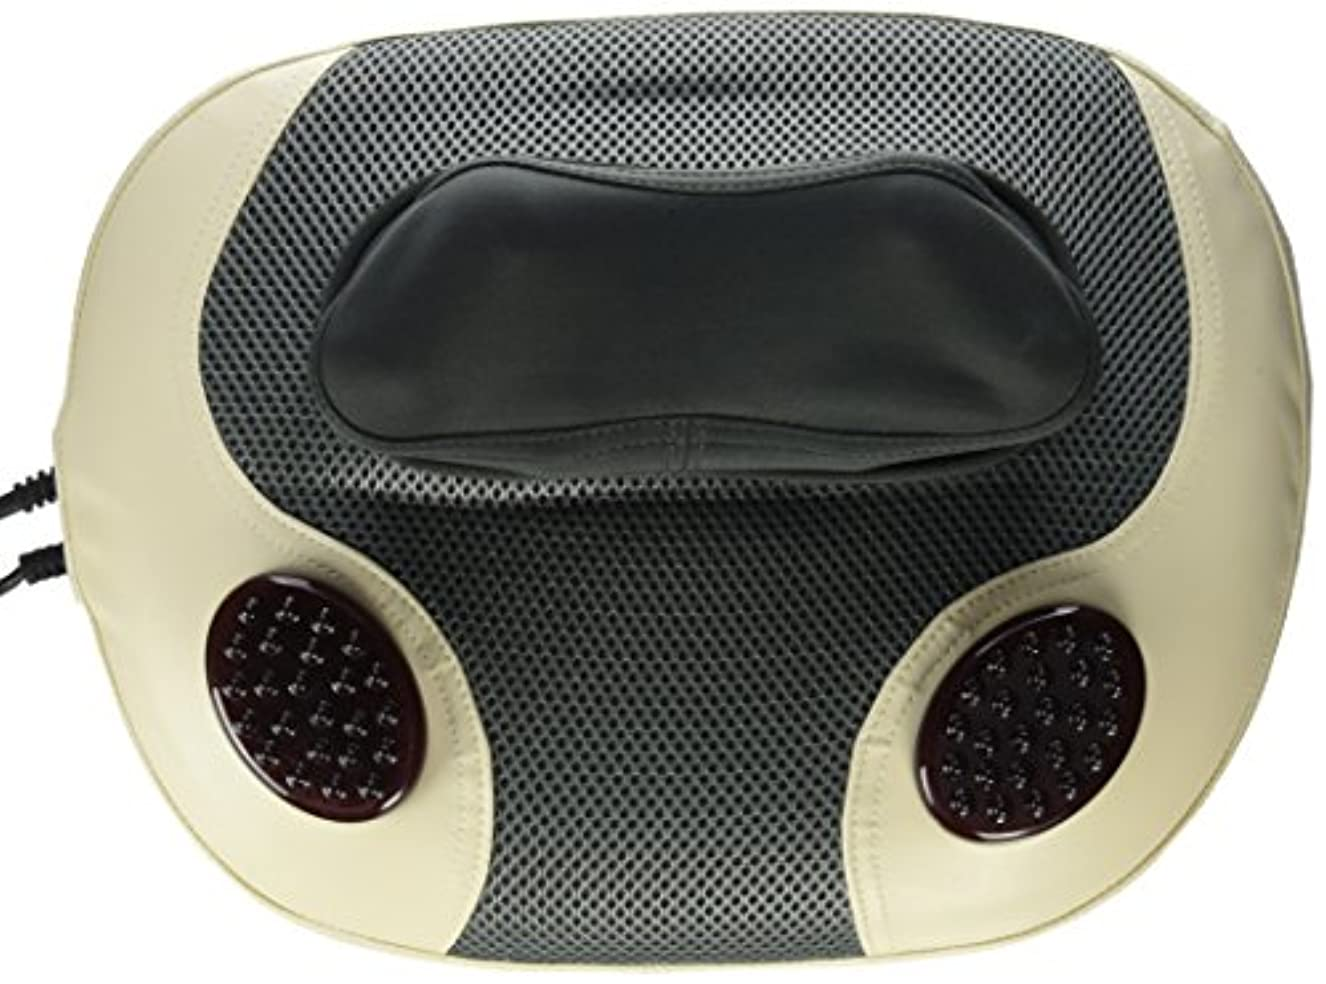 展示会路地百科事典SKG Versatile Shiatsu Neck Massager with Heat by SKG